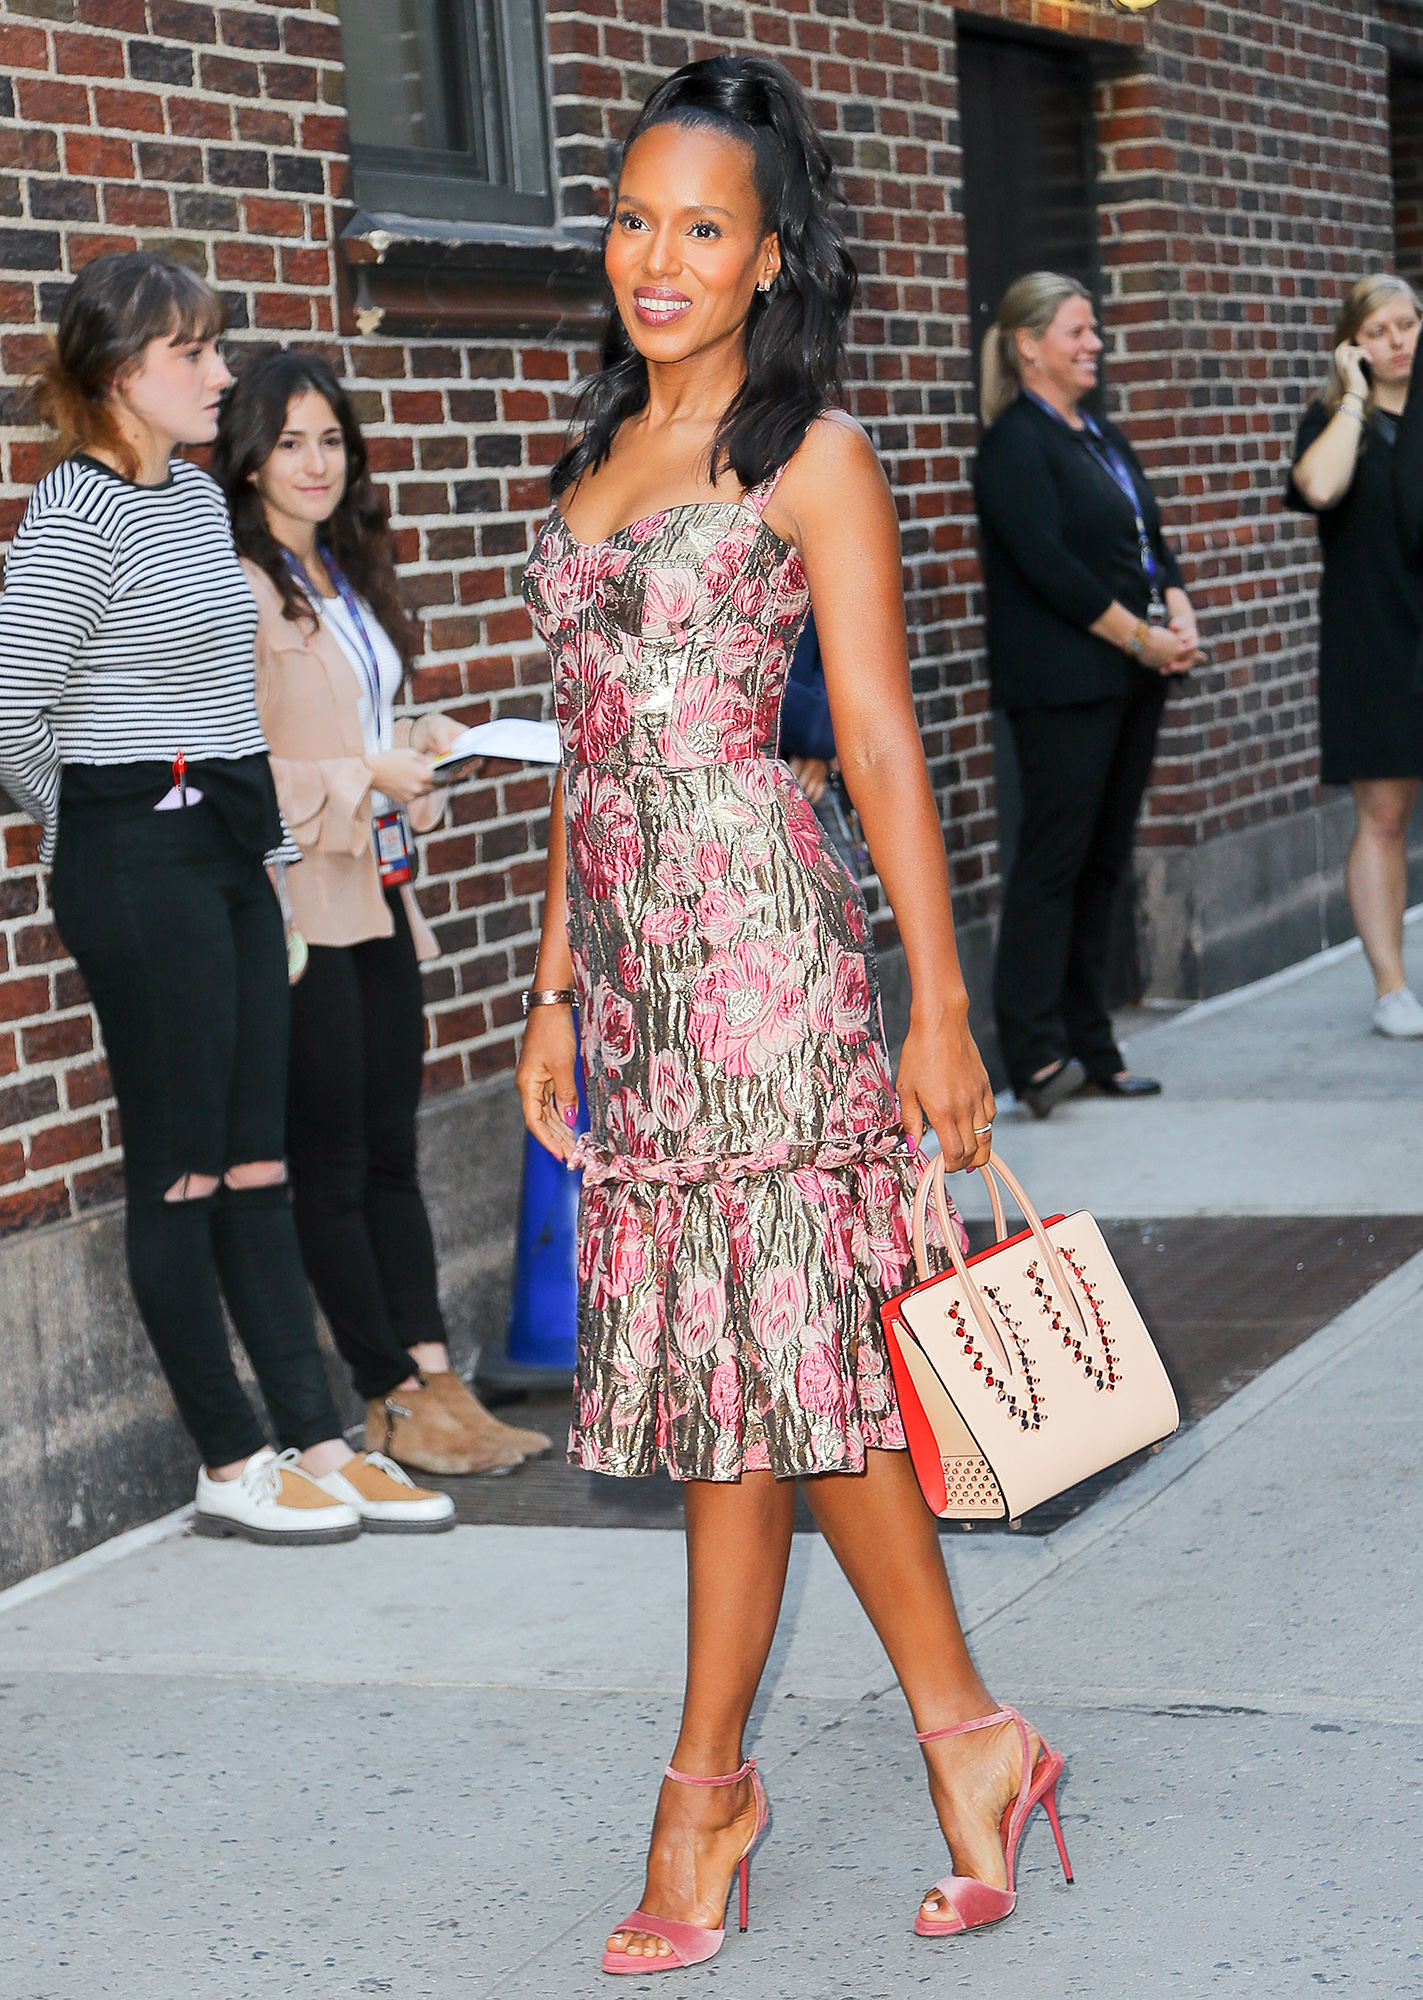 Kerry Washington wore a floral dress while arrives at The Late Show with Stephen Colbert in New York City